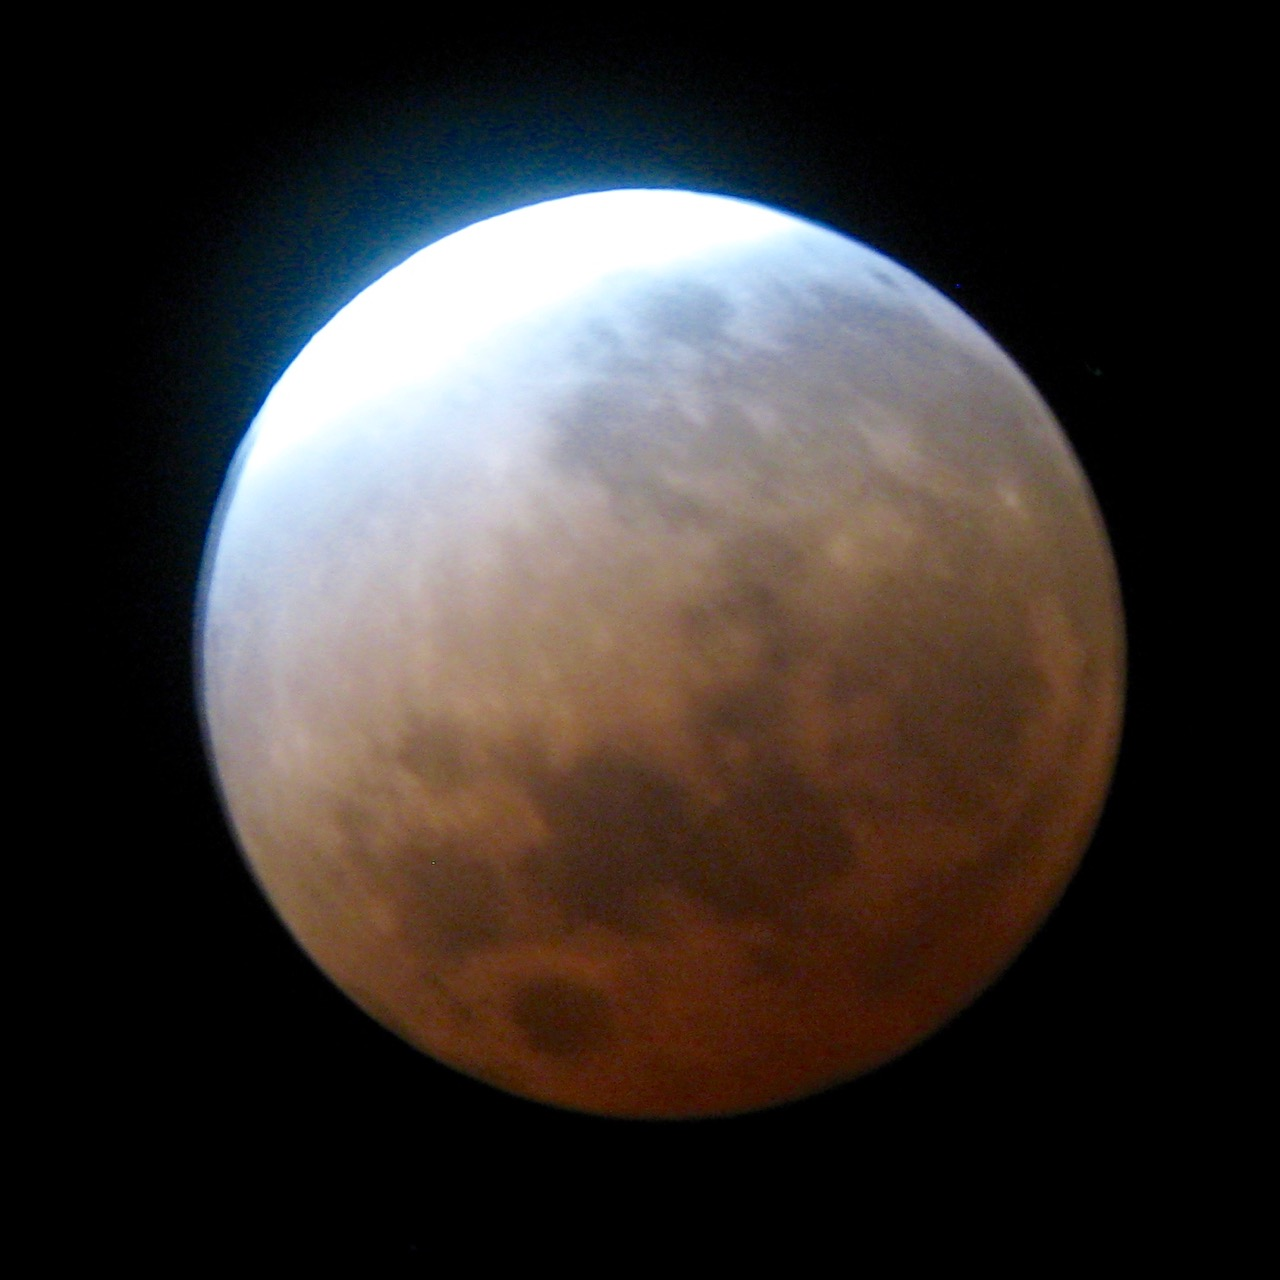 lunar_eclipse_feb_2008.jpg